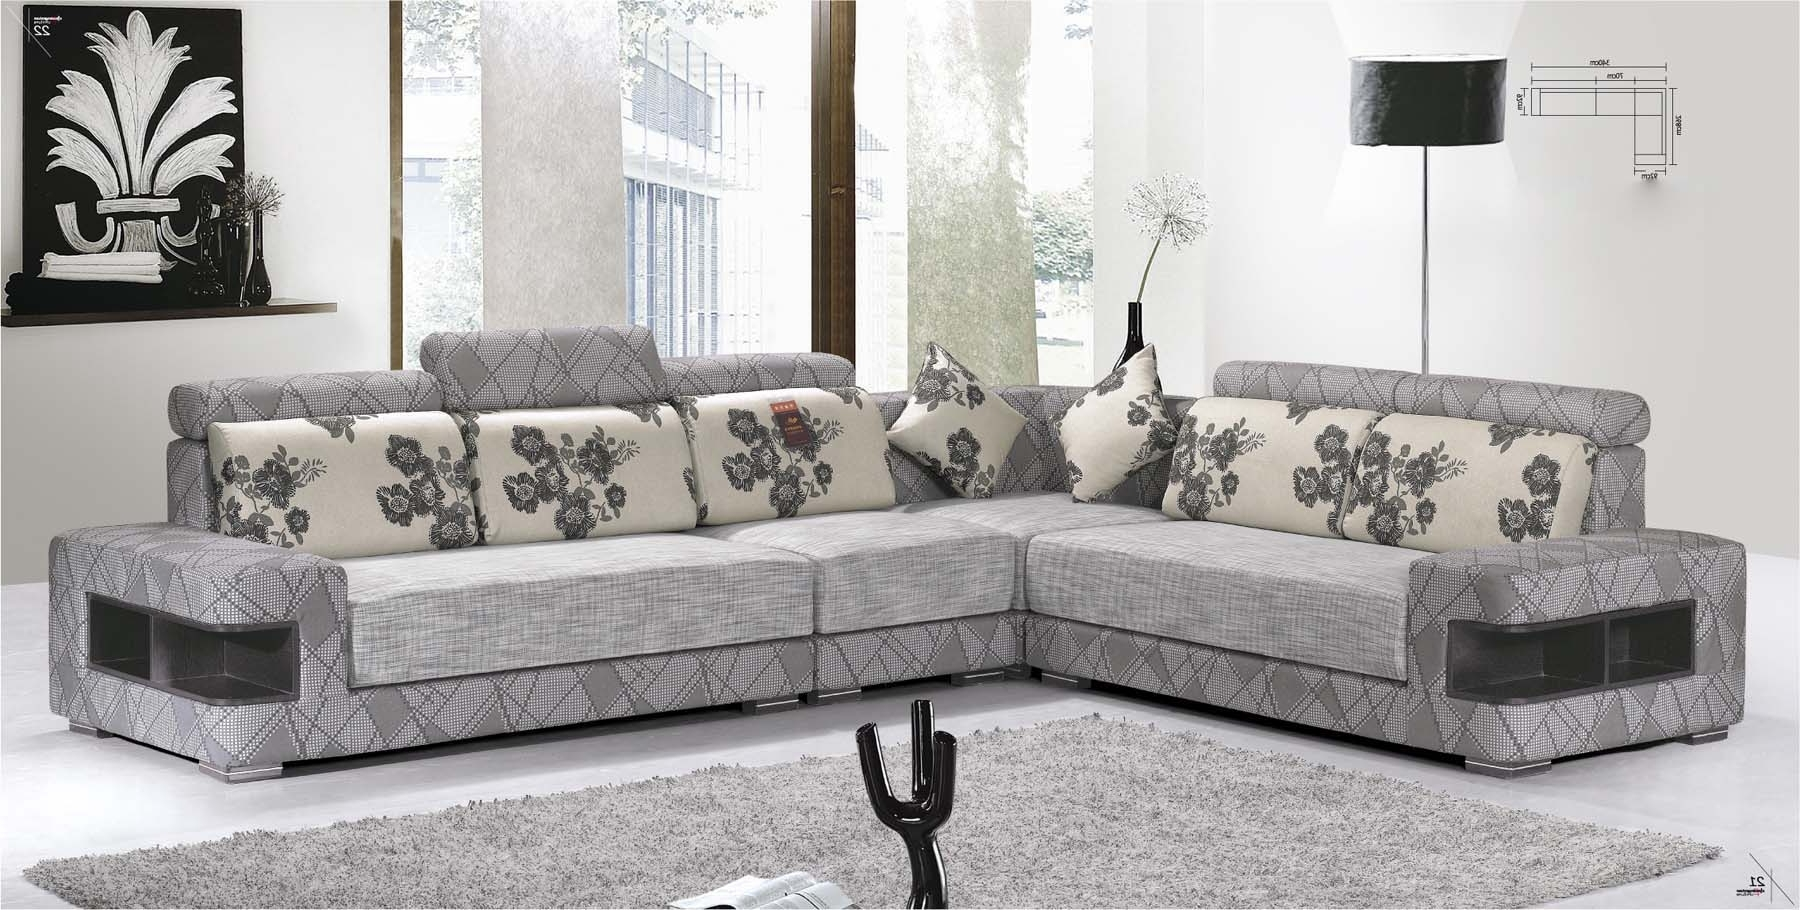 Inspiration Home Design And Decoration Intended For Contemporary Fabric Sofas (View 12 of 20)